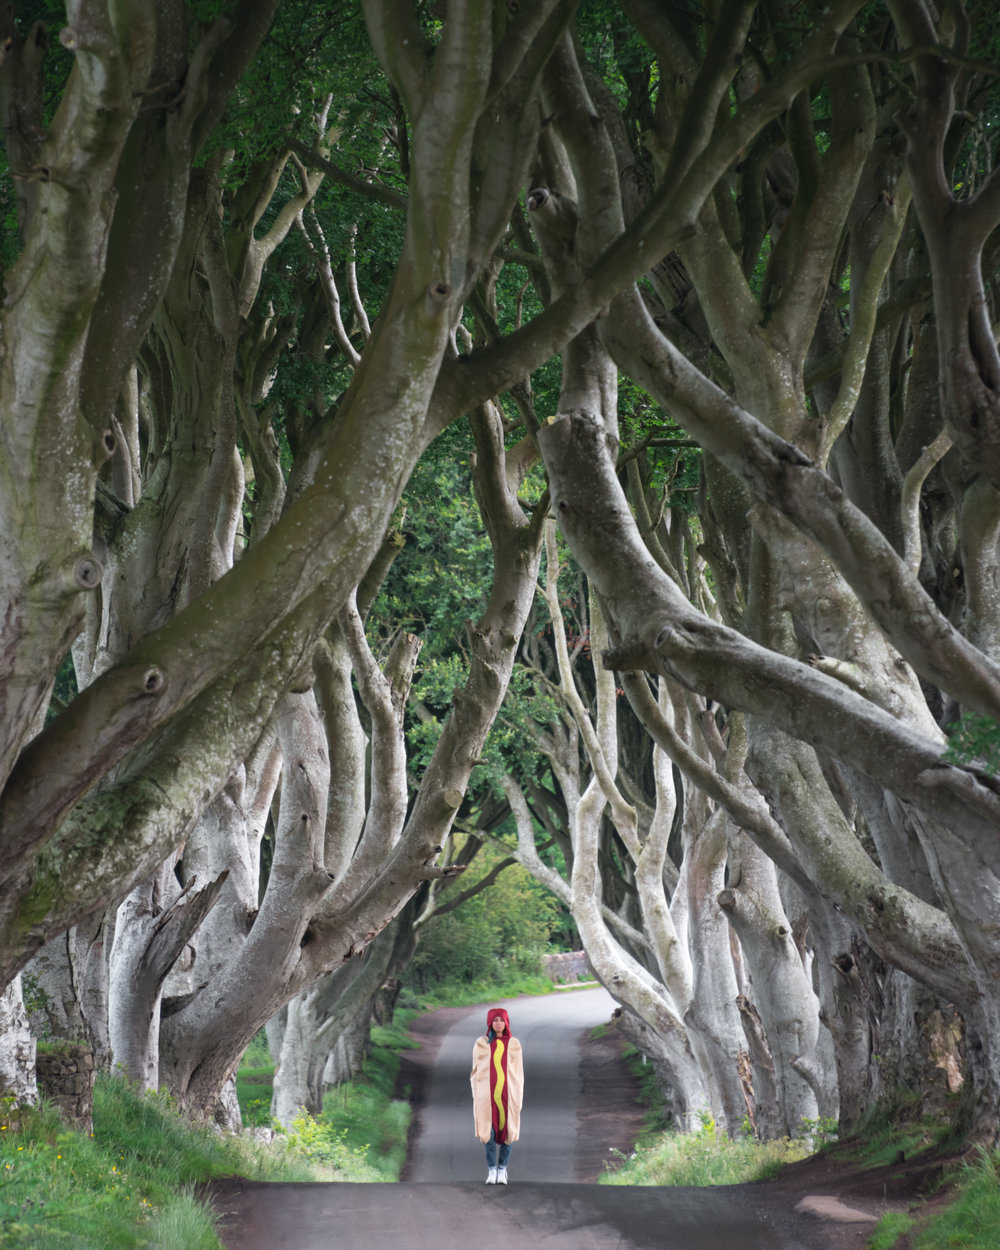 Conor snapped this photo of me in my traveling hot dog costume at the Dark Hedges.